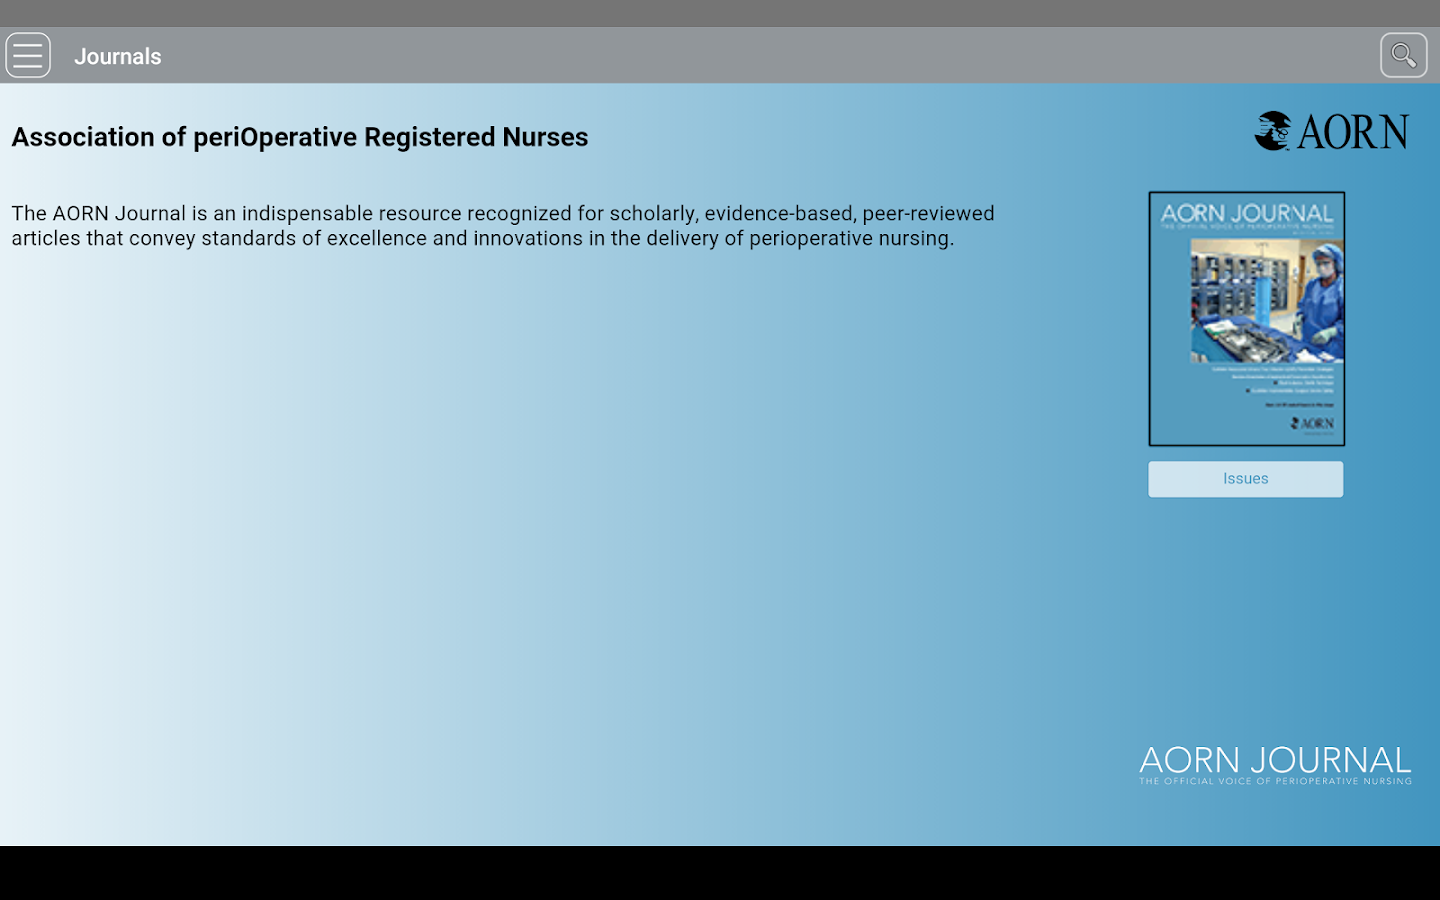 Association of periOperative Registered Nurses- screenshot